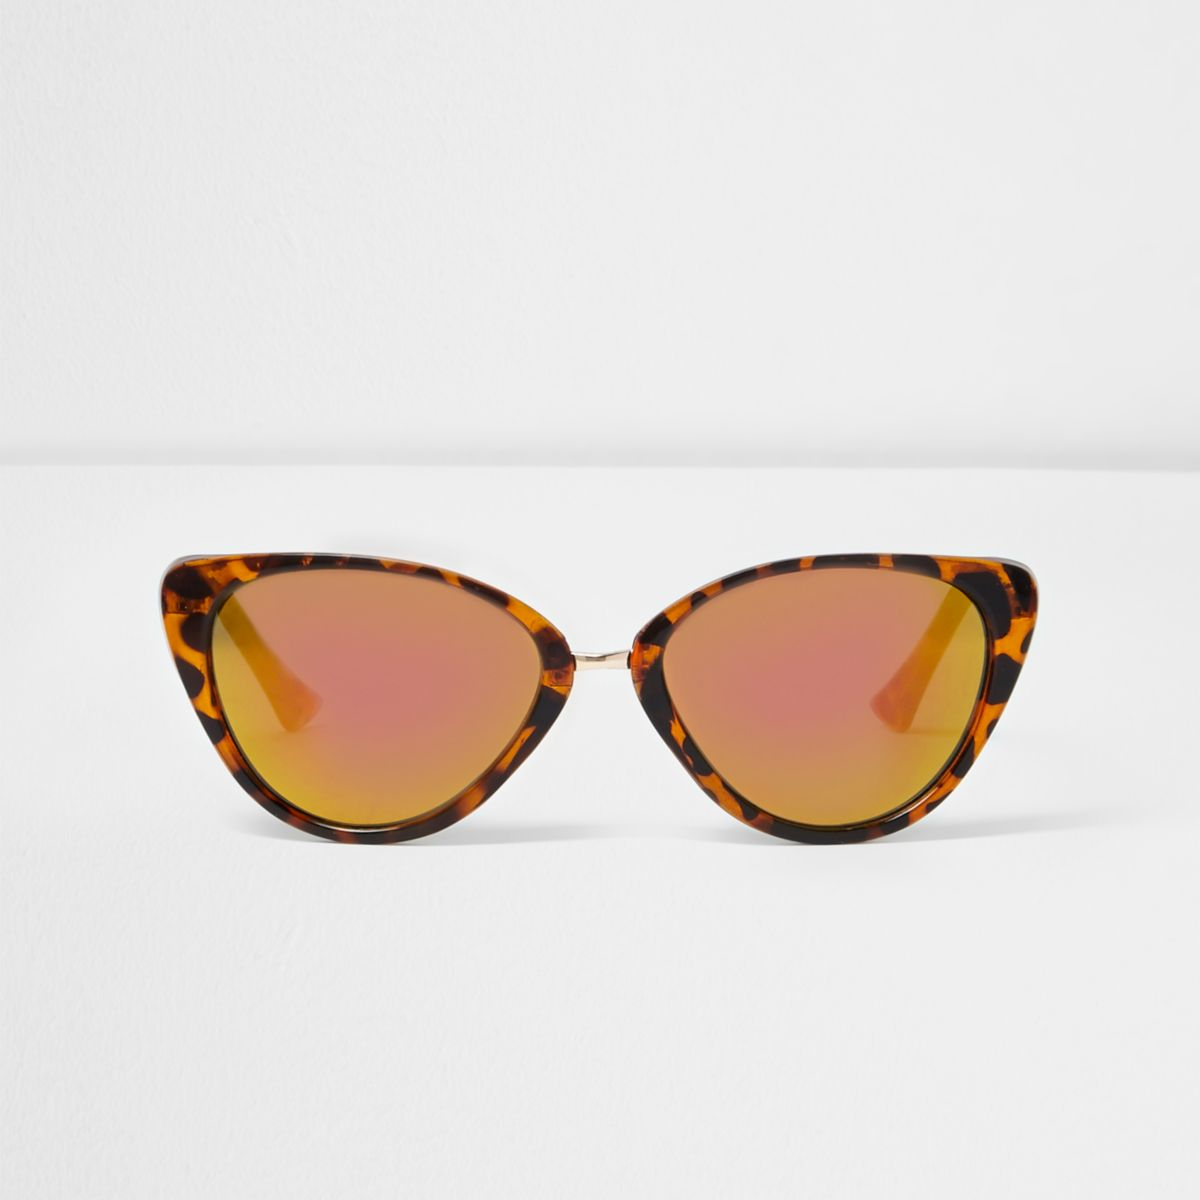 Girls brown tortoiseshell cat eye sunglasses